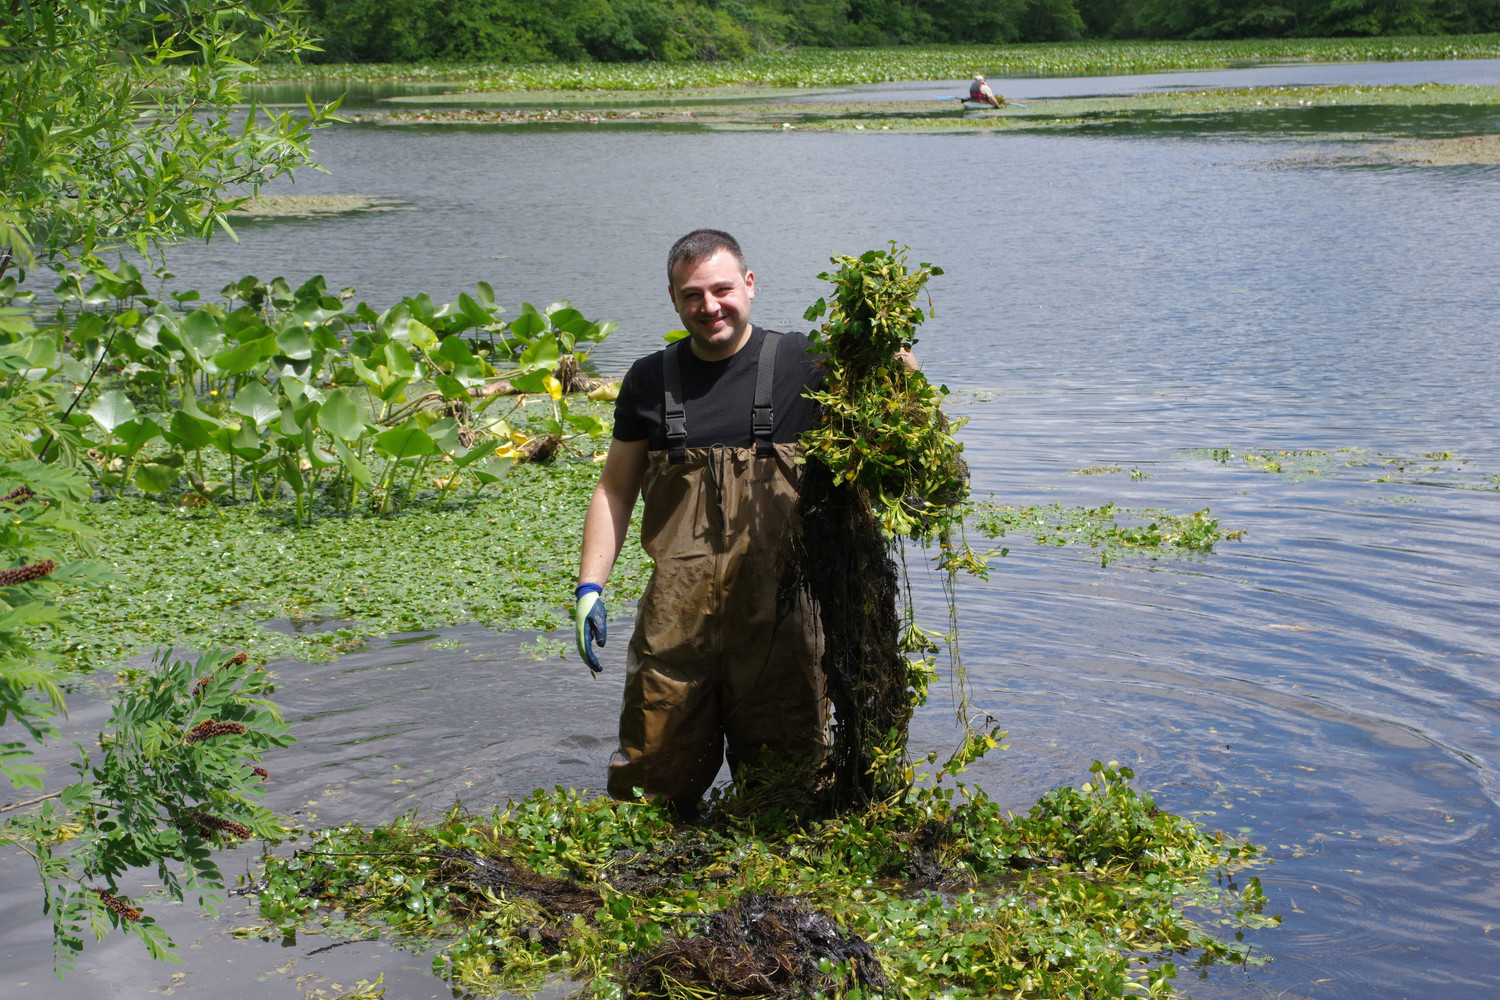 David Ganim from NCSDW holding harmful Water Chestnut plant from pond.